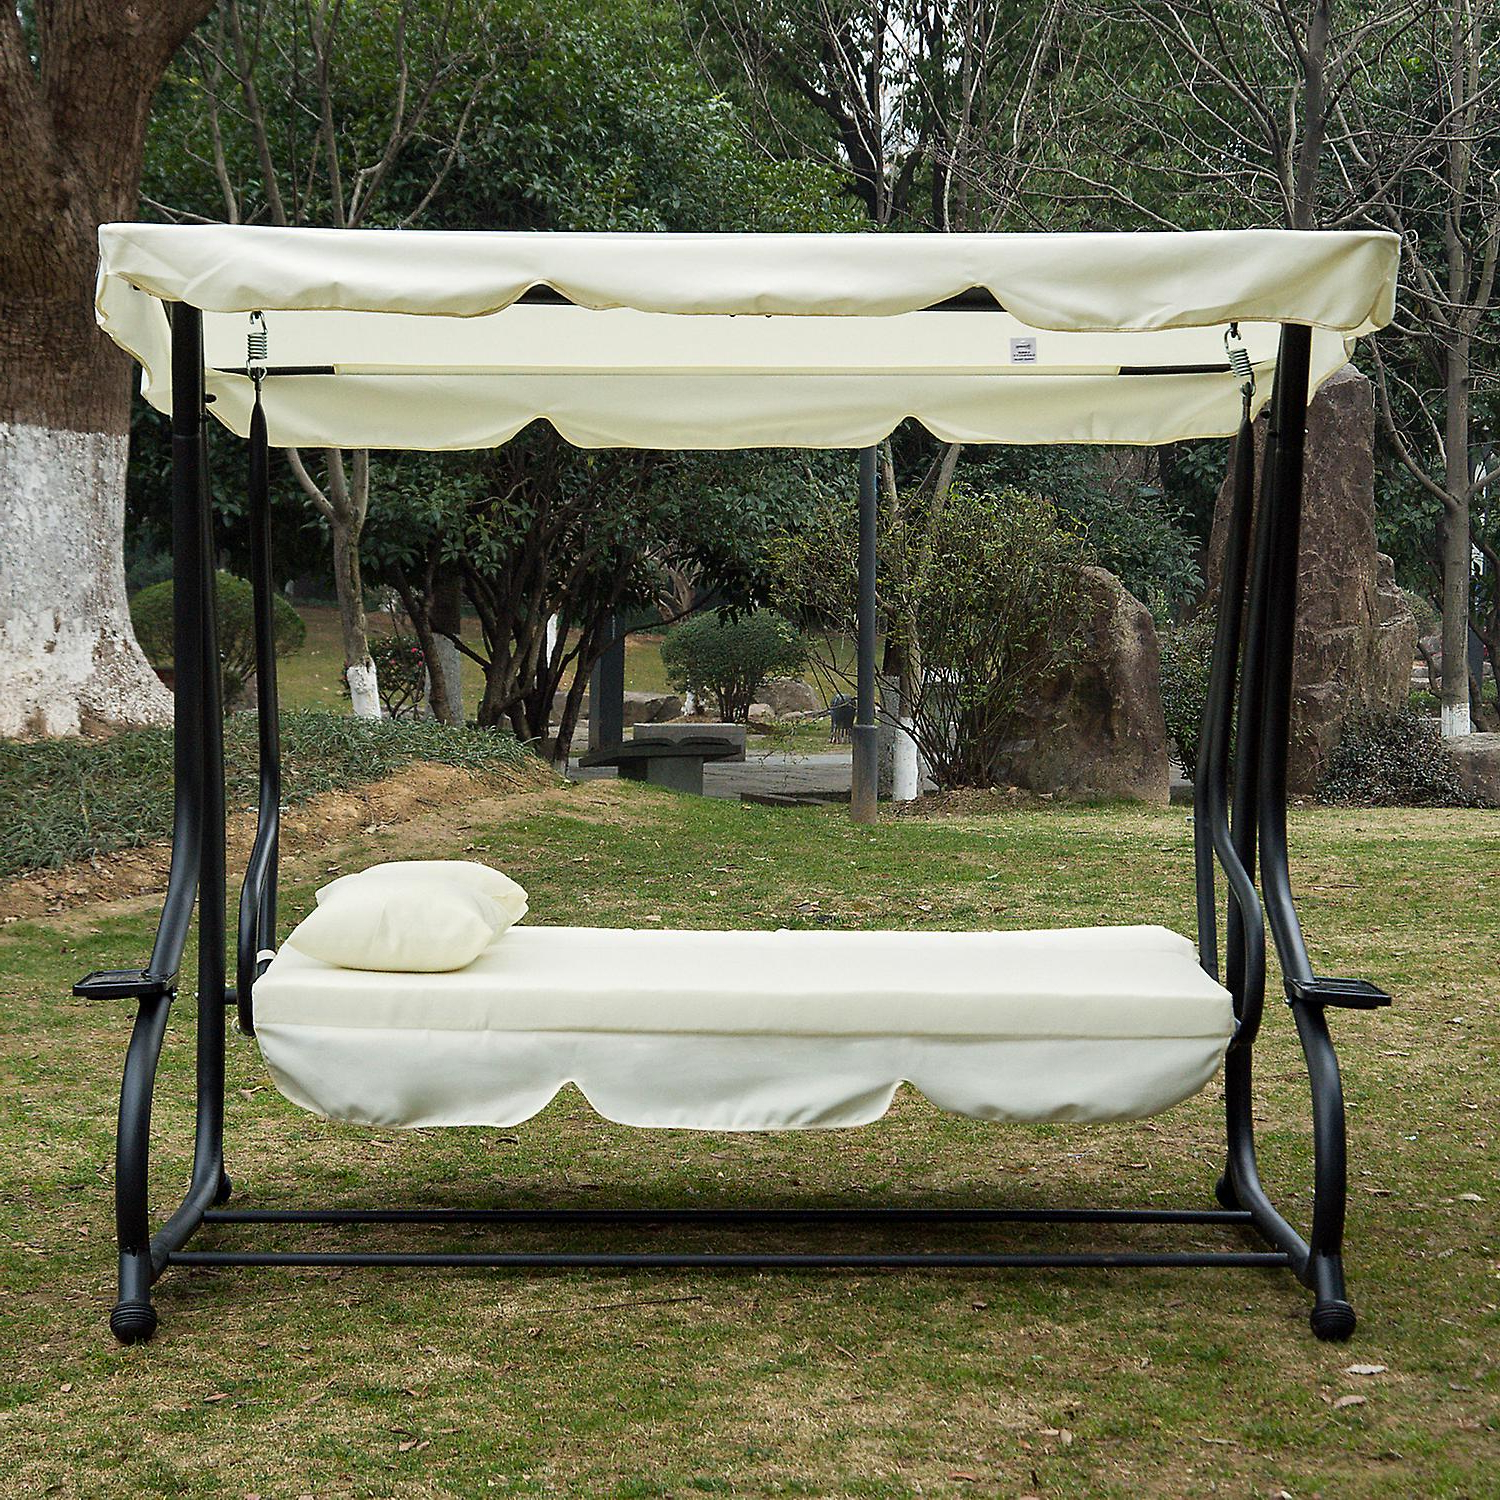 Well Known 3 Seat Pergola Swings Pertaining To Outsunny 2 In 1 Patio Swing Chair 3 Seater Hammock Cushion Bed Tilt Canopy Garden Lounger Bench (View 22 of 25)